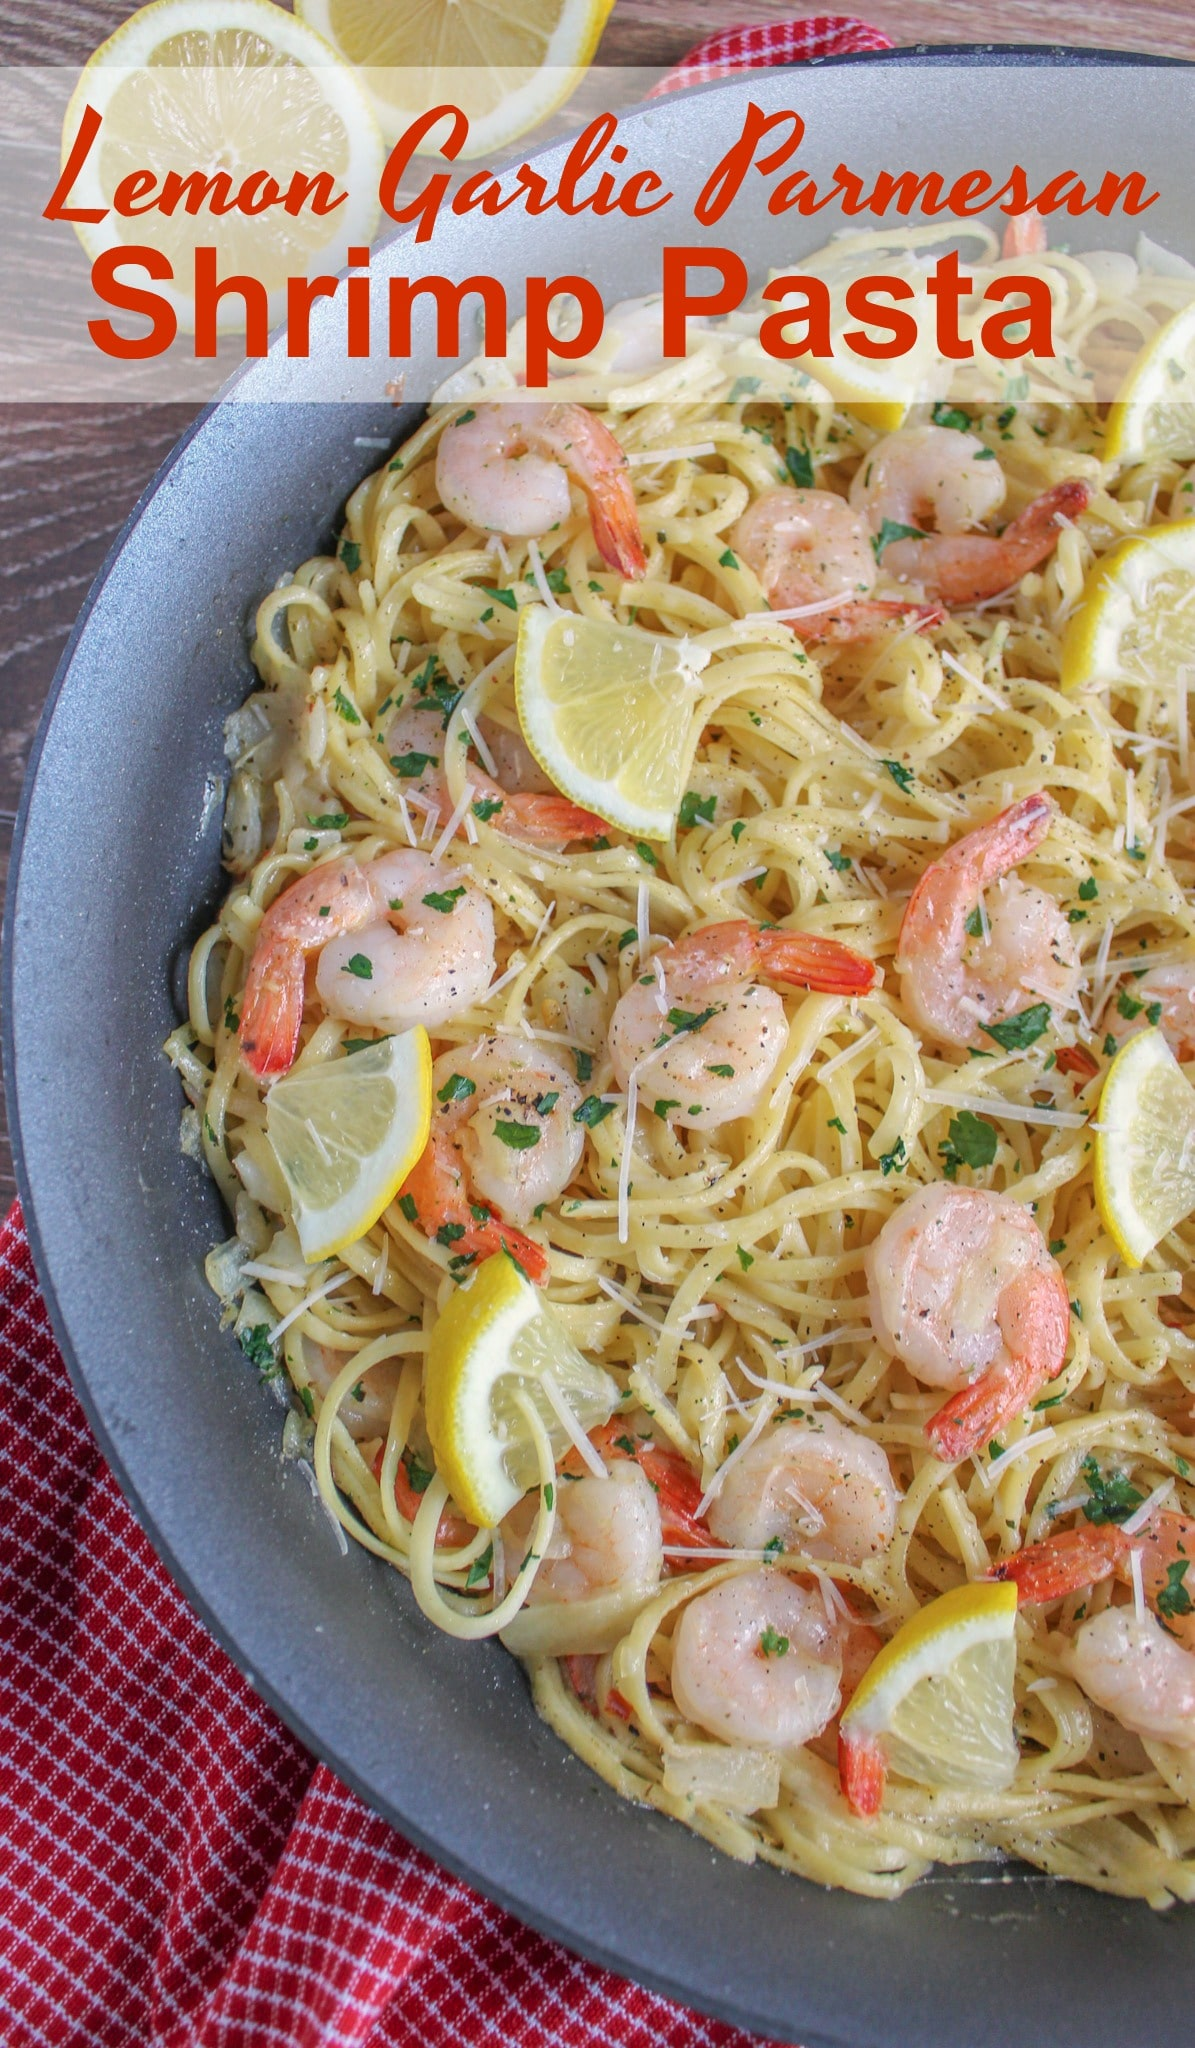 Lemon Garlic Parmesan Shrimp Pasta is an easy 30 minute recipe that features tons of savory shrimp tossed in pasta with a lemon garlic sauce and parmesan cheese. This recipe is sure to become a new family favorite!